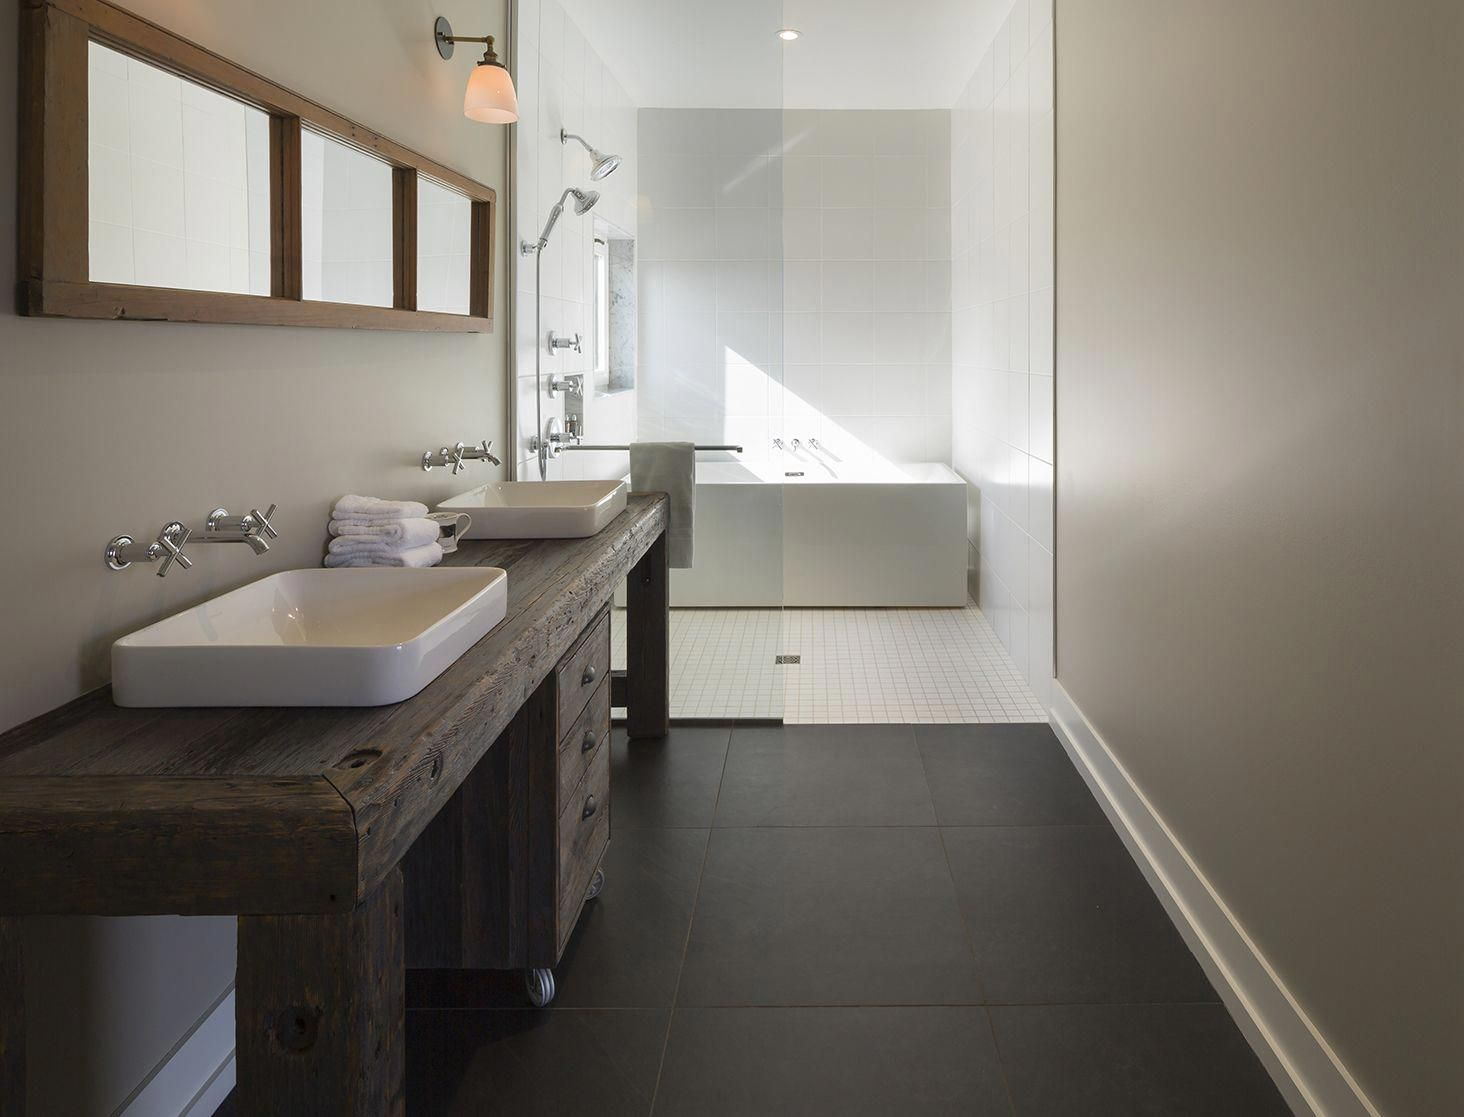 The master bathroom features sinks and fixtures by Kohler